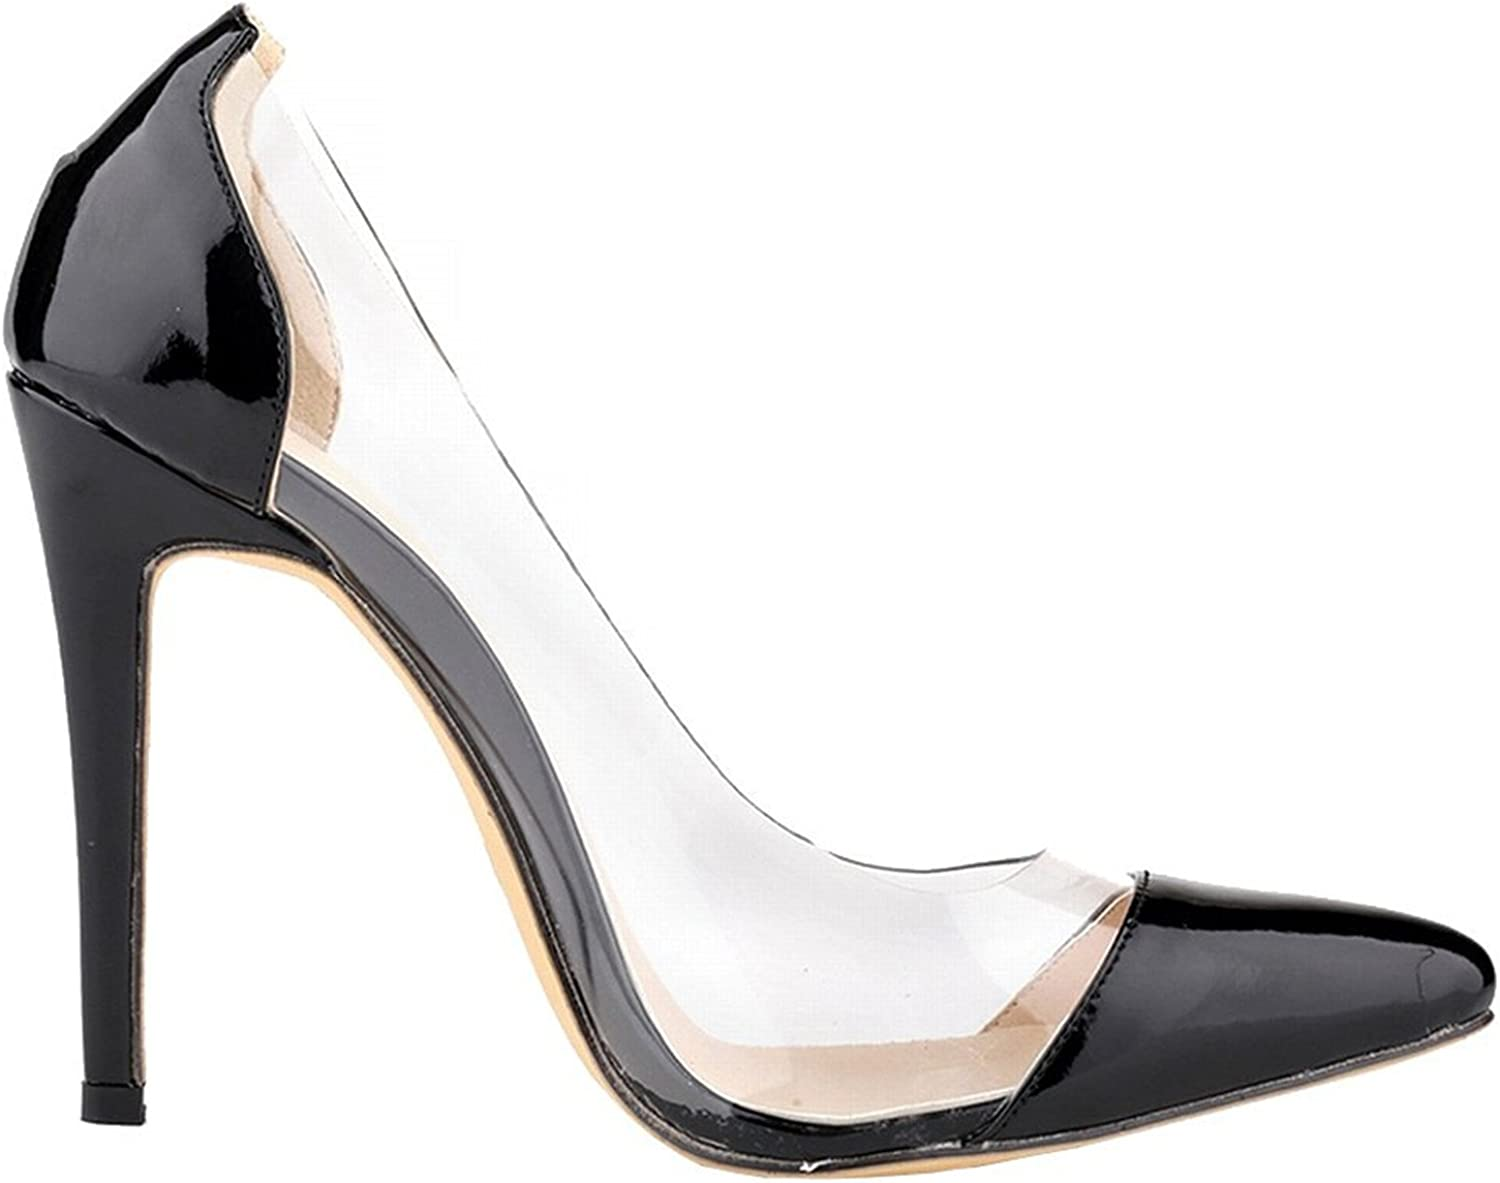 Oppicong Womens shoes Closed Toe High Heels Women's Pointed Slender Leather Pumps C-black9.5 B(M) US